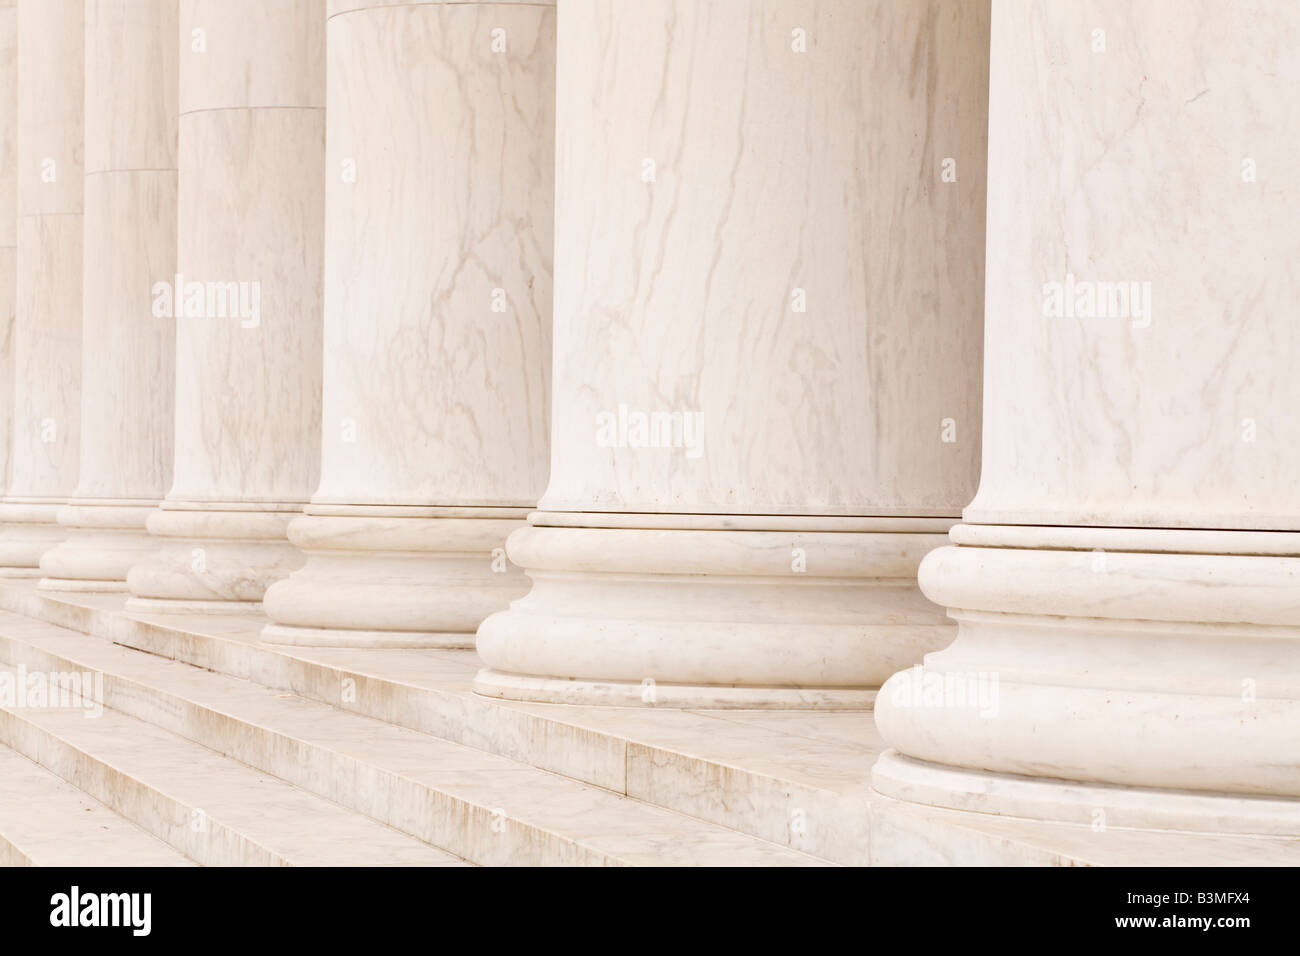 Marble stone columns in a row and steps, ideal for classic background Stock Photo